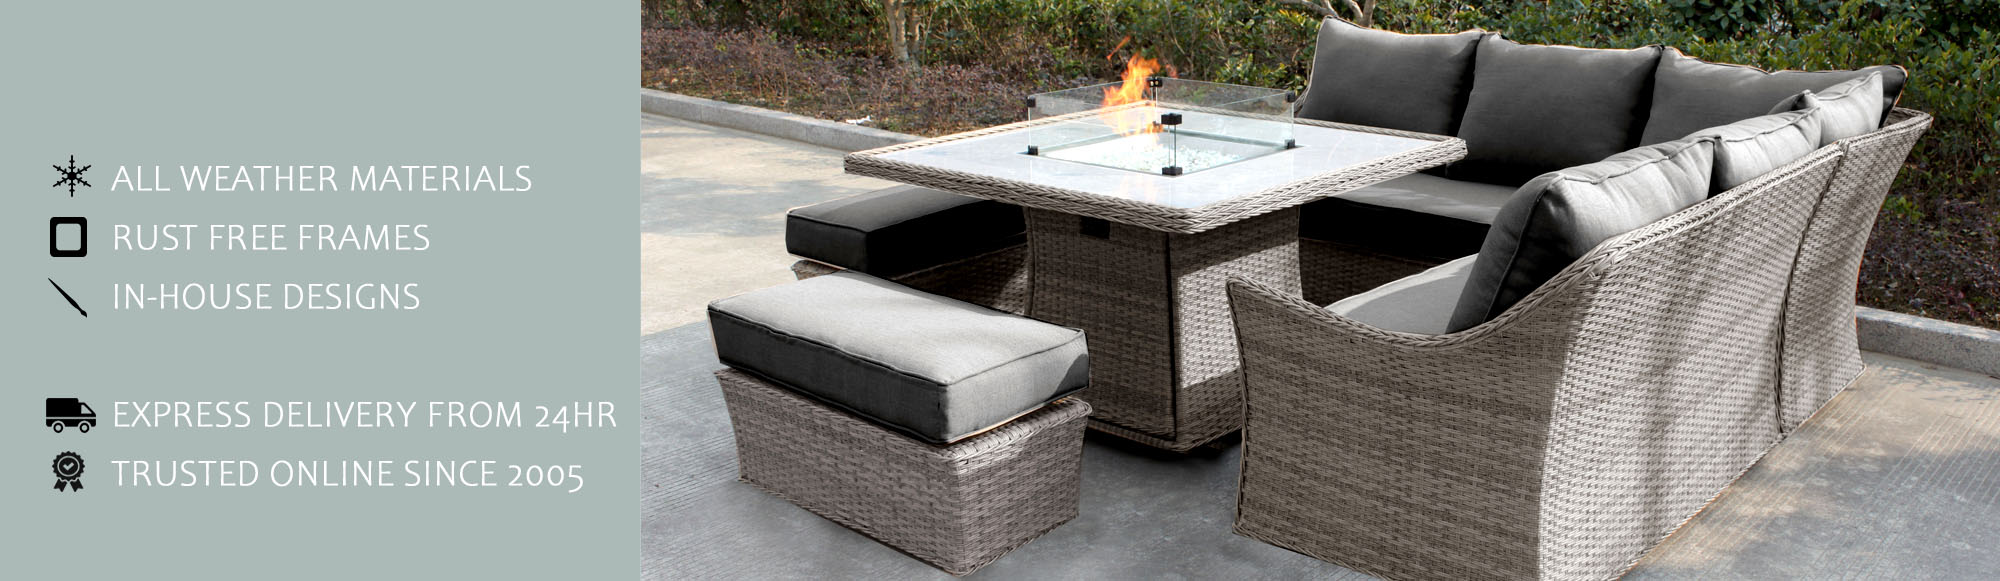 Firepit Table Garden Furniture For Outdoor Use